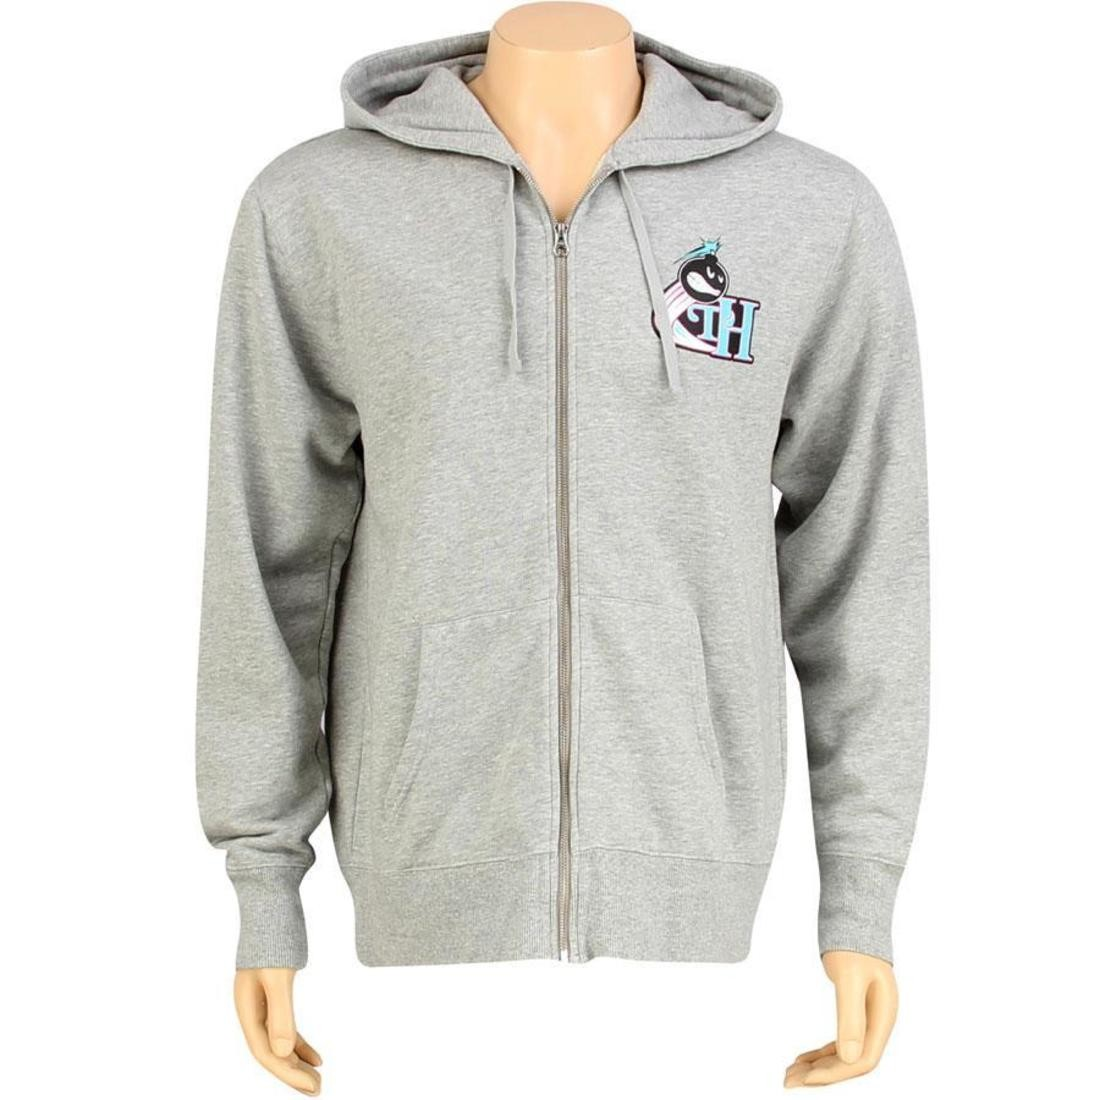 【海外限定】フーディー パーカー トップス 【 THE HUNDREDS PLAYOFFS ZIP UP HOODY ATHLETIC HEATHER 】